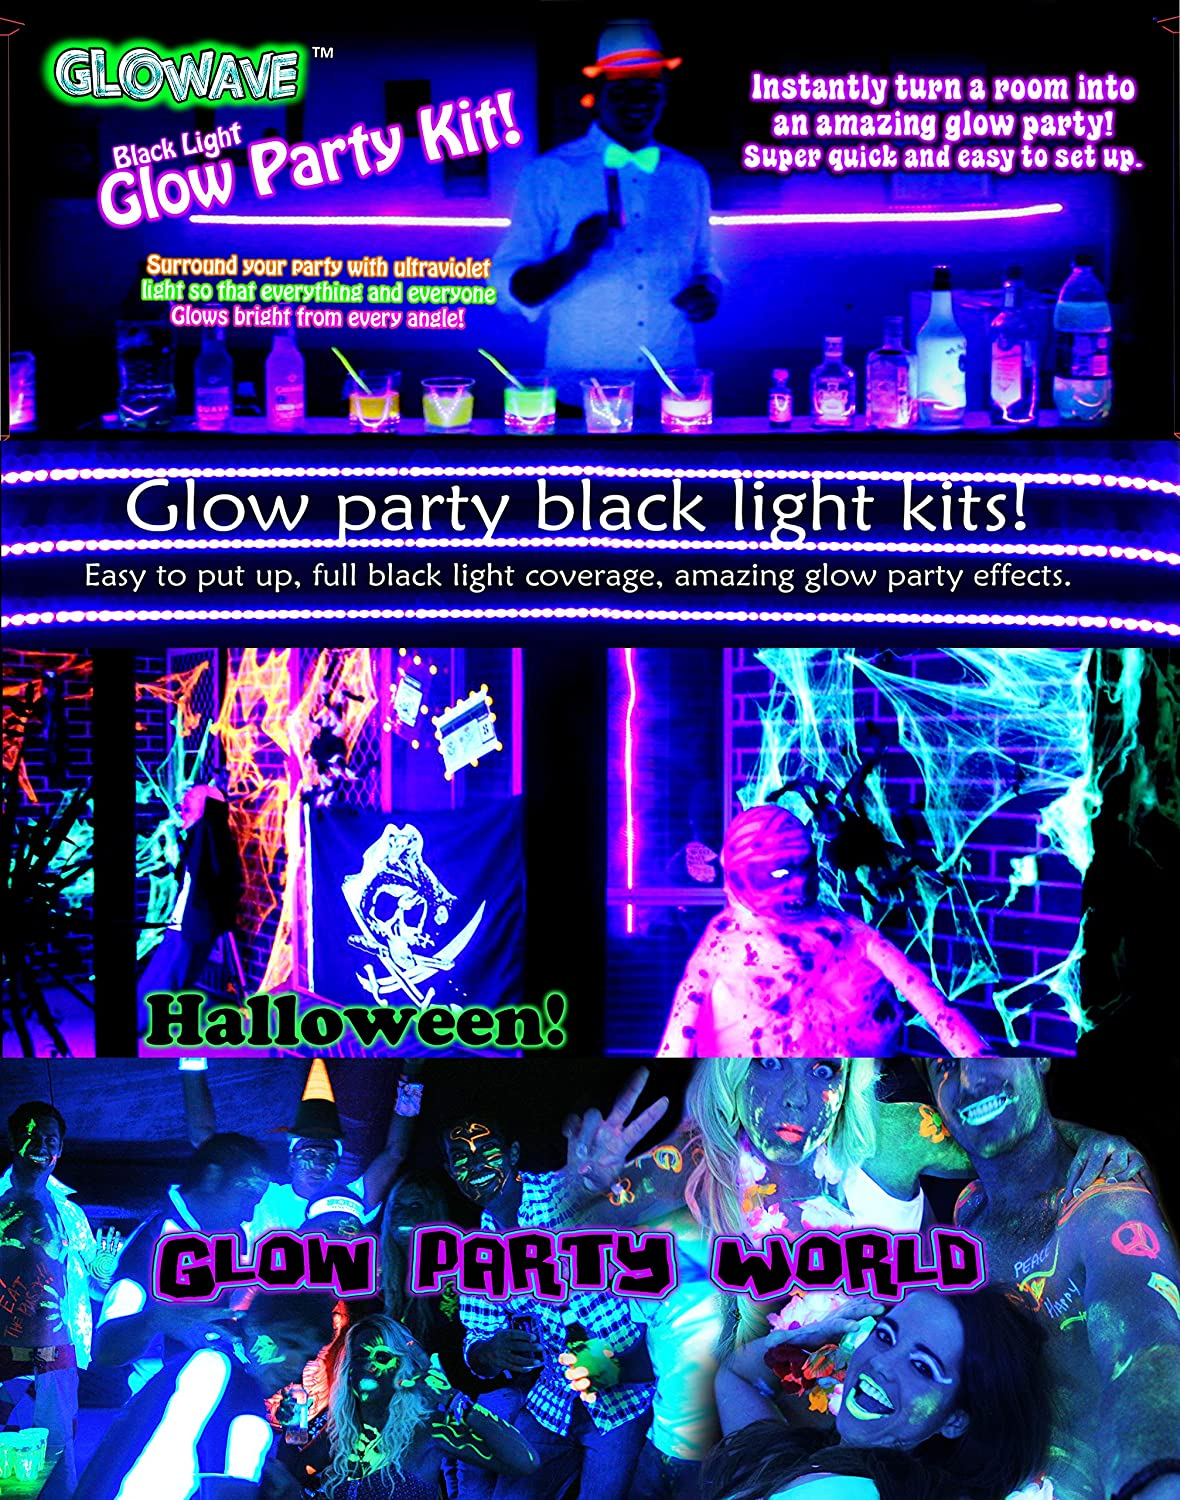 Glowave Black Light Glow Party Kit. 4 x 2m long UV lights with power adapters and plugs. Ultraviolet LED Blacklights (8m total). Black light UV light